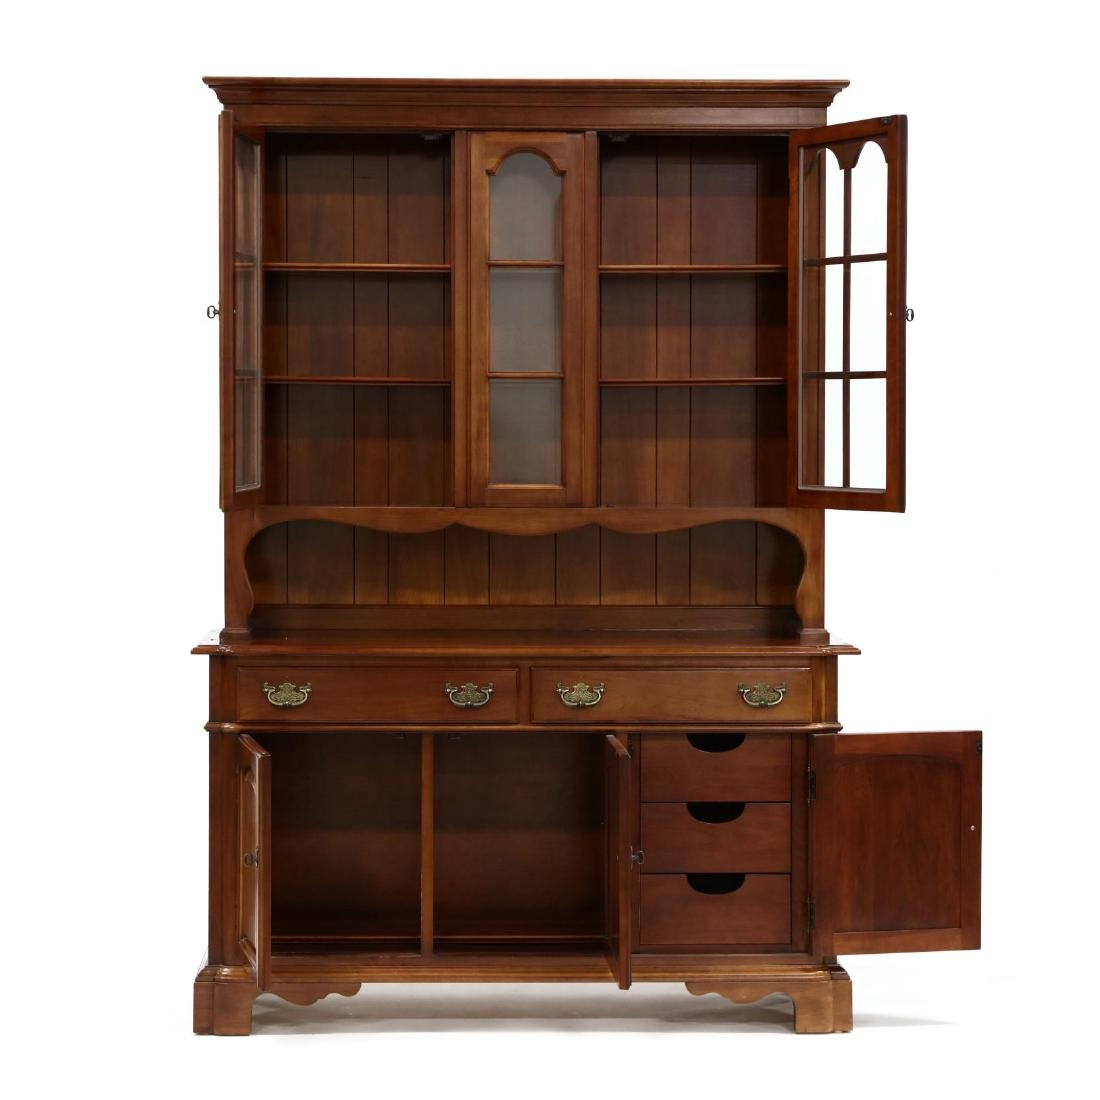 Monitor, Chippendale Style Cherry China Cabinet - 2